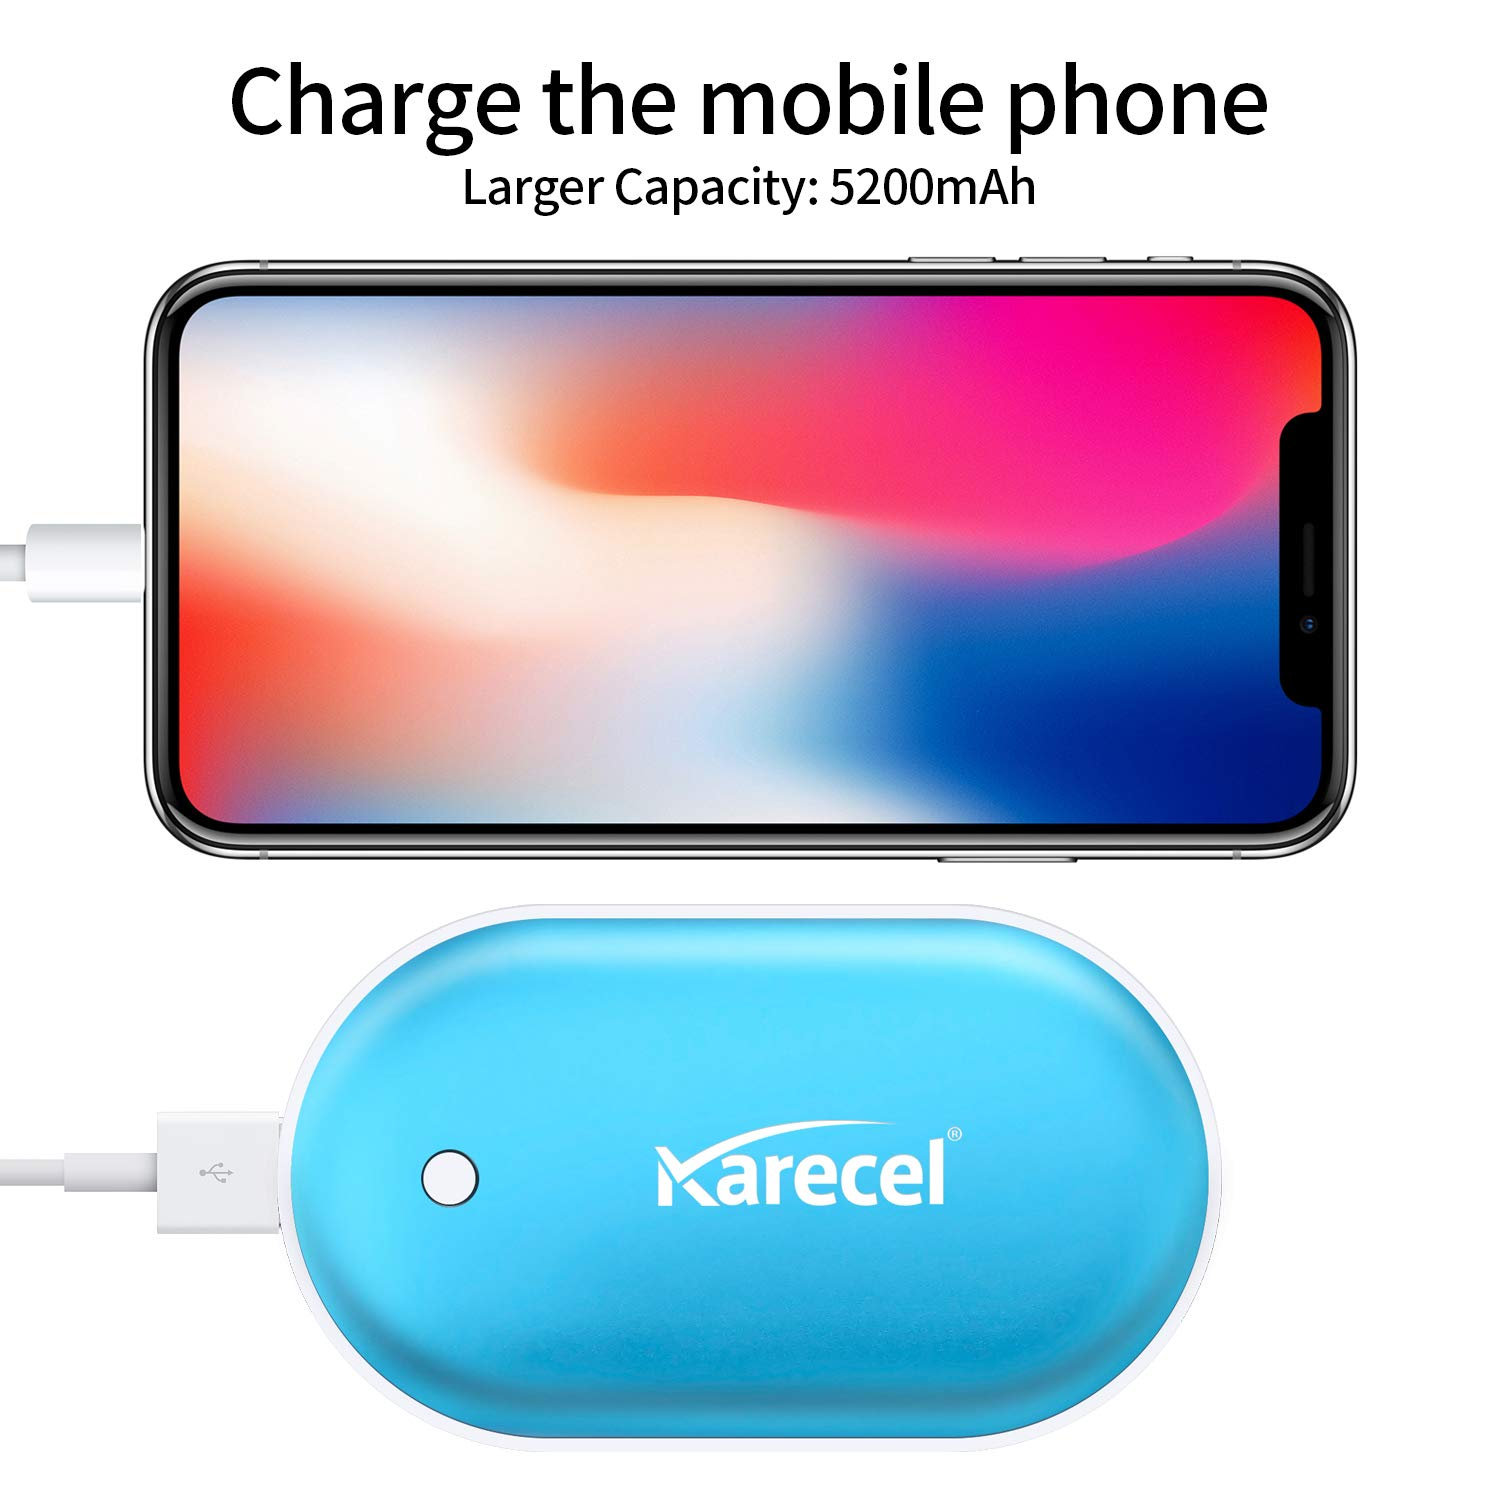 KARECEL Rechargeable Hand Warmers Best Gifts for Men and Women in Cold Winter Electric Hand Warmer 5200mAh Powerbank Reusable Handwarmers Portable USB Hand Warmer Heater Battery Pocket Warmer